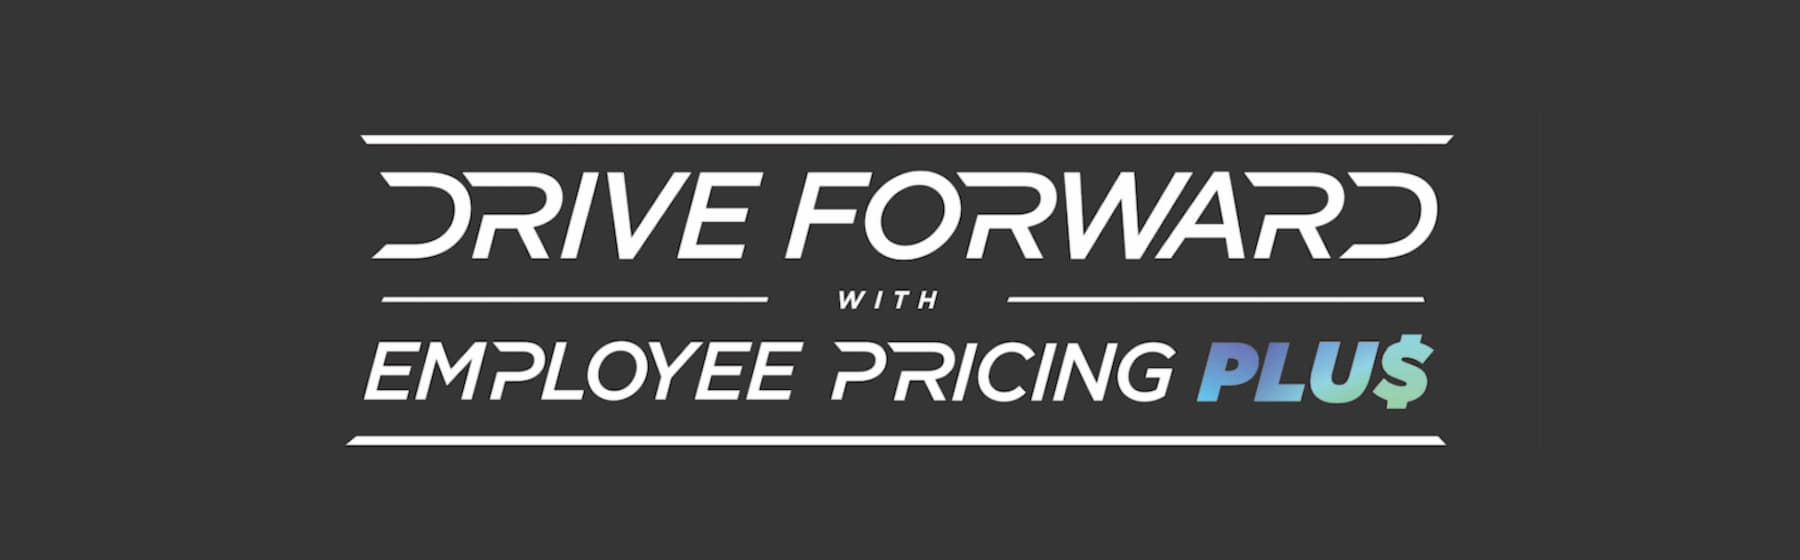 Employee Pricing Tri-Star Indiana